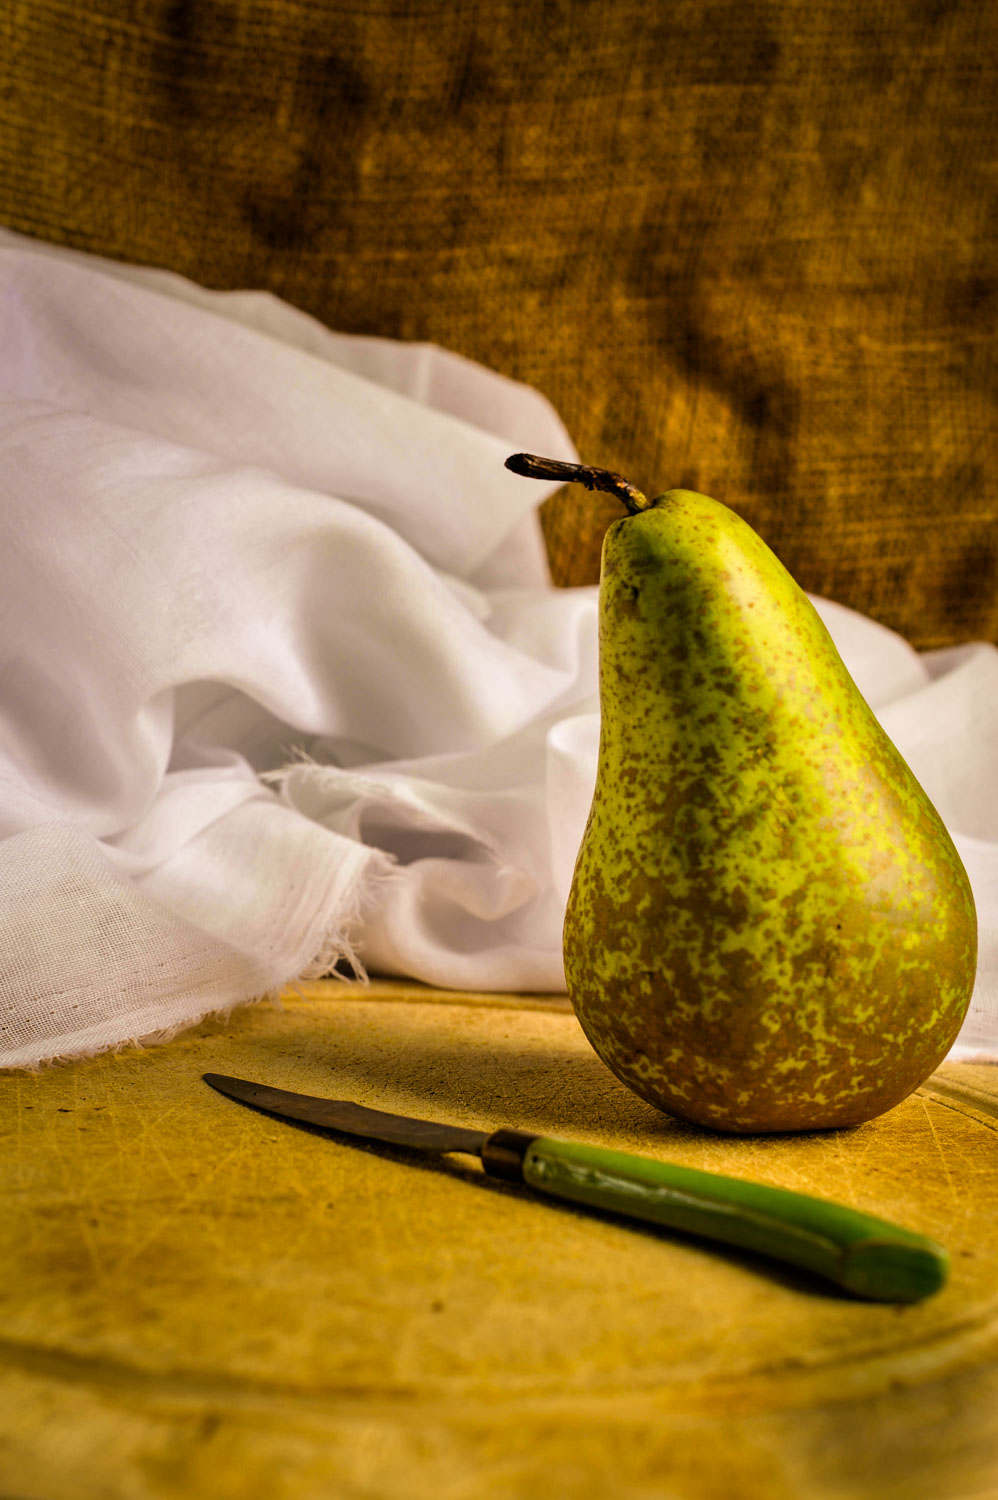 Still Life Assignment - by Caroline Gee